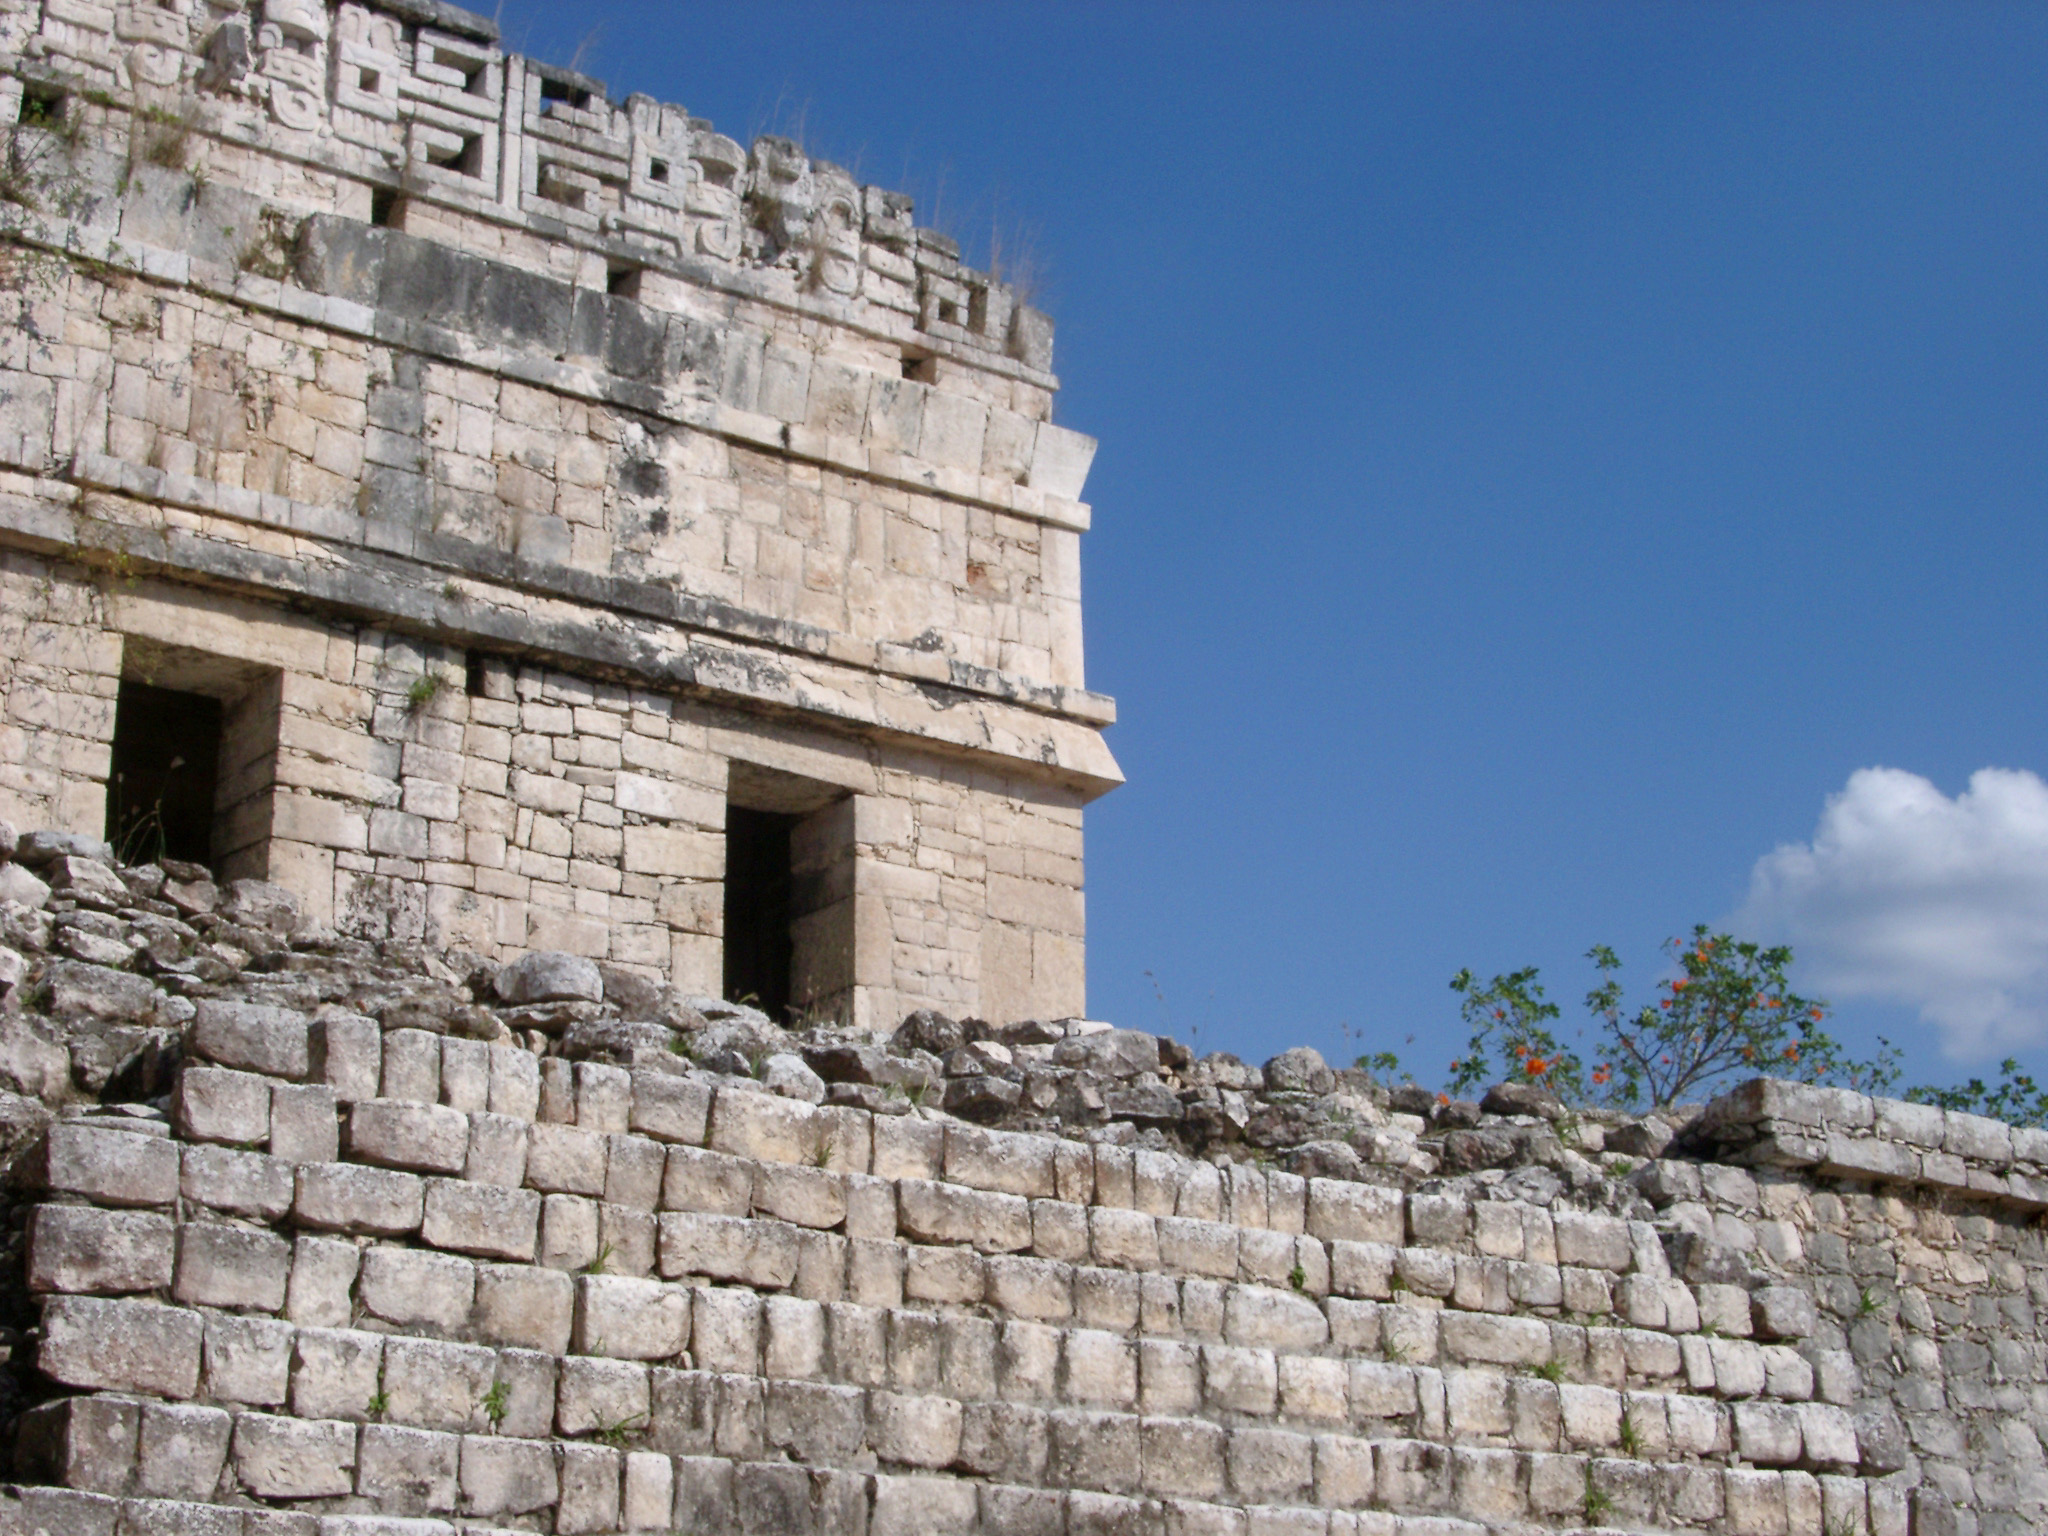 Detail of a stone building at Chitzen Itza in the Mayan ruins on the Yucatan Peninsula, Mexico